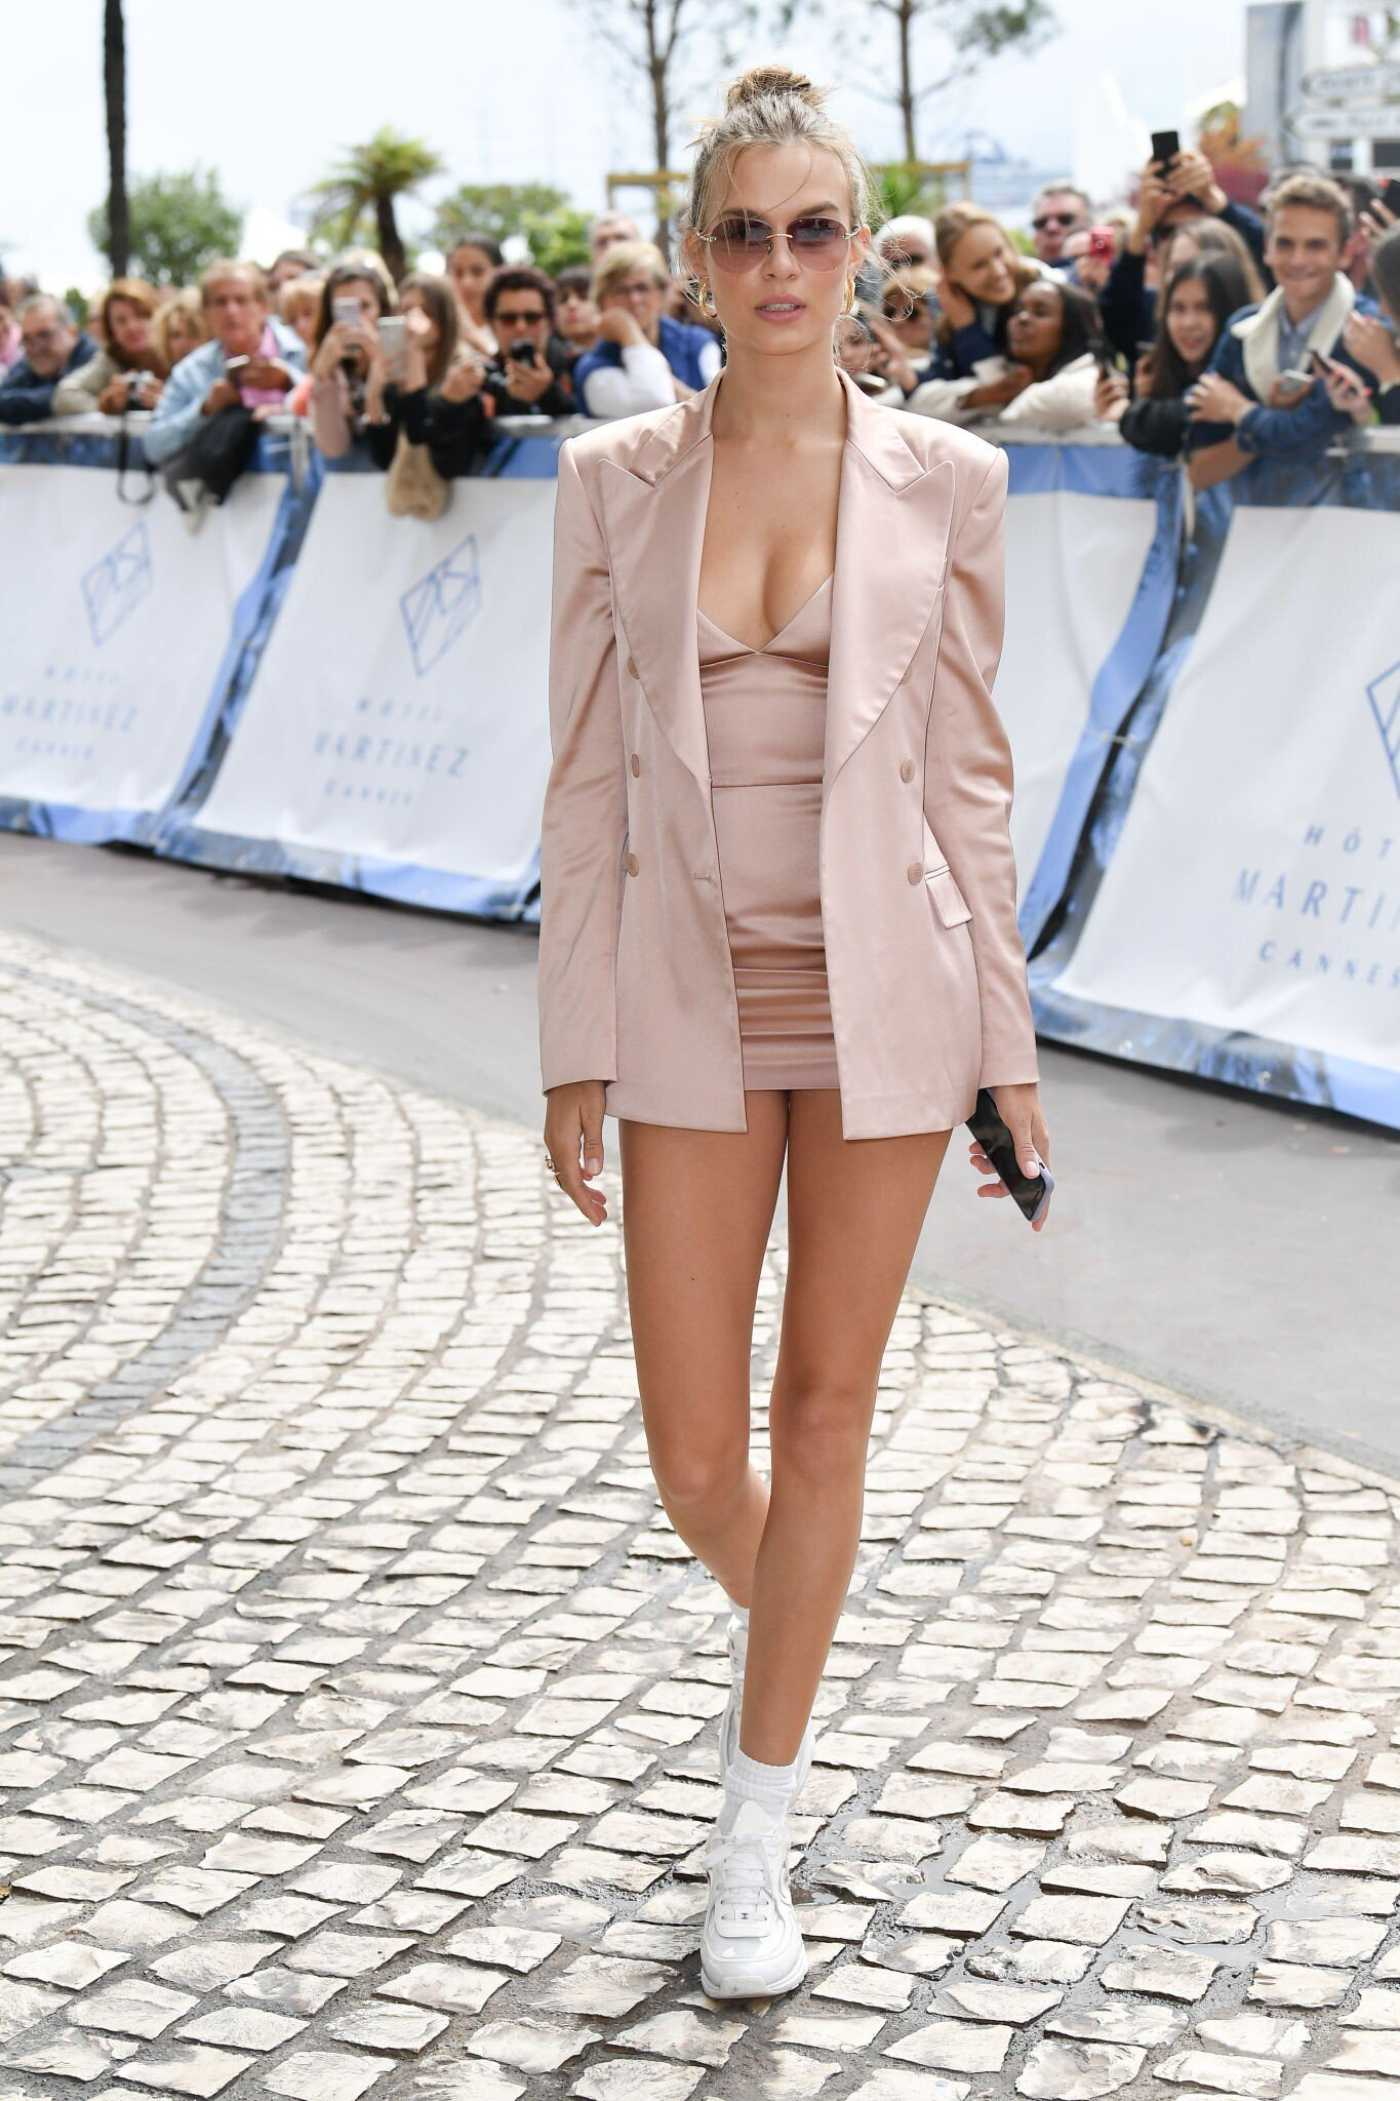 Josephine Skriver in a Beige Blazer Arrives at Her Hotel in Cannes 05/19/2019